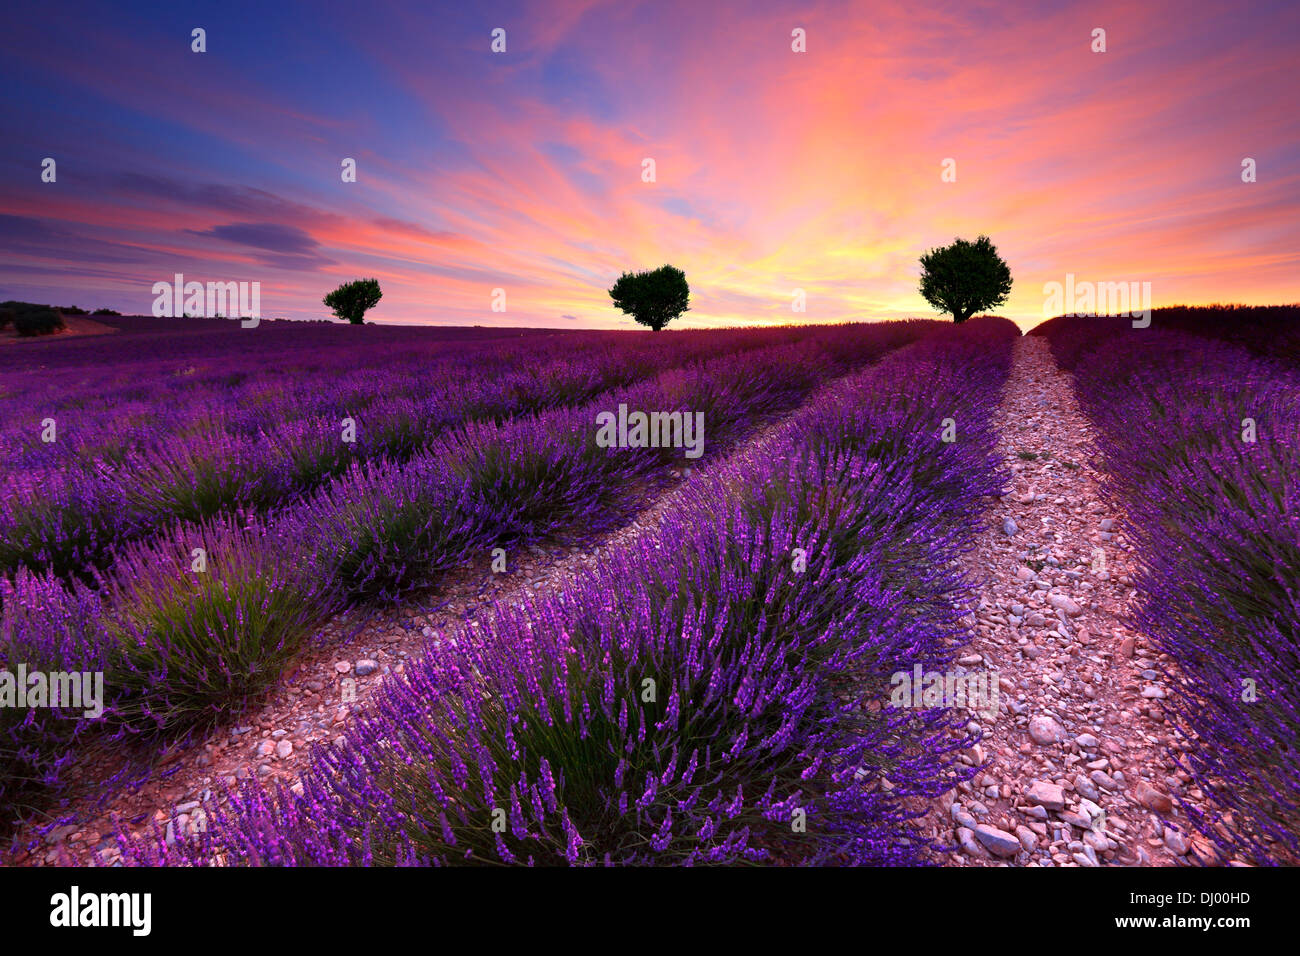 Three on the hill in lavender field at sunset. France Provence. - Stock Image